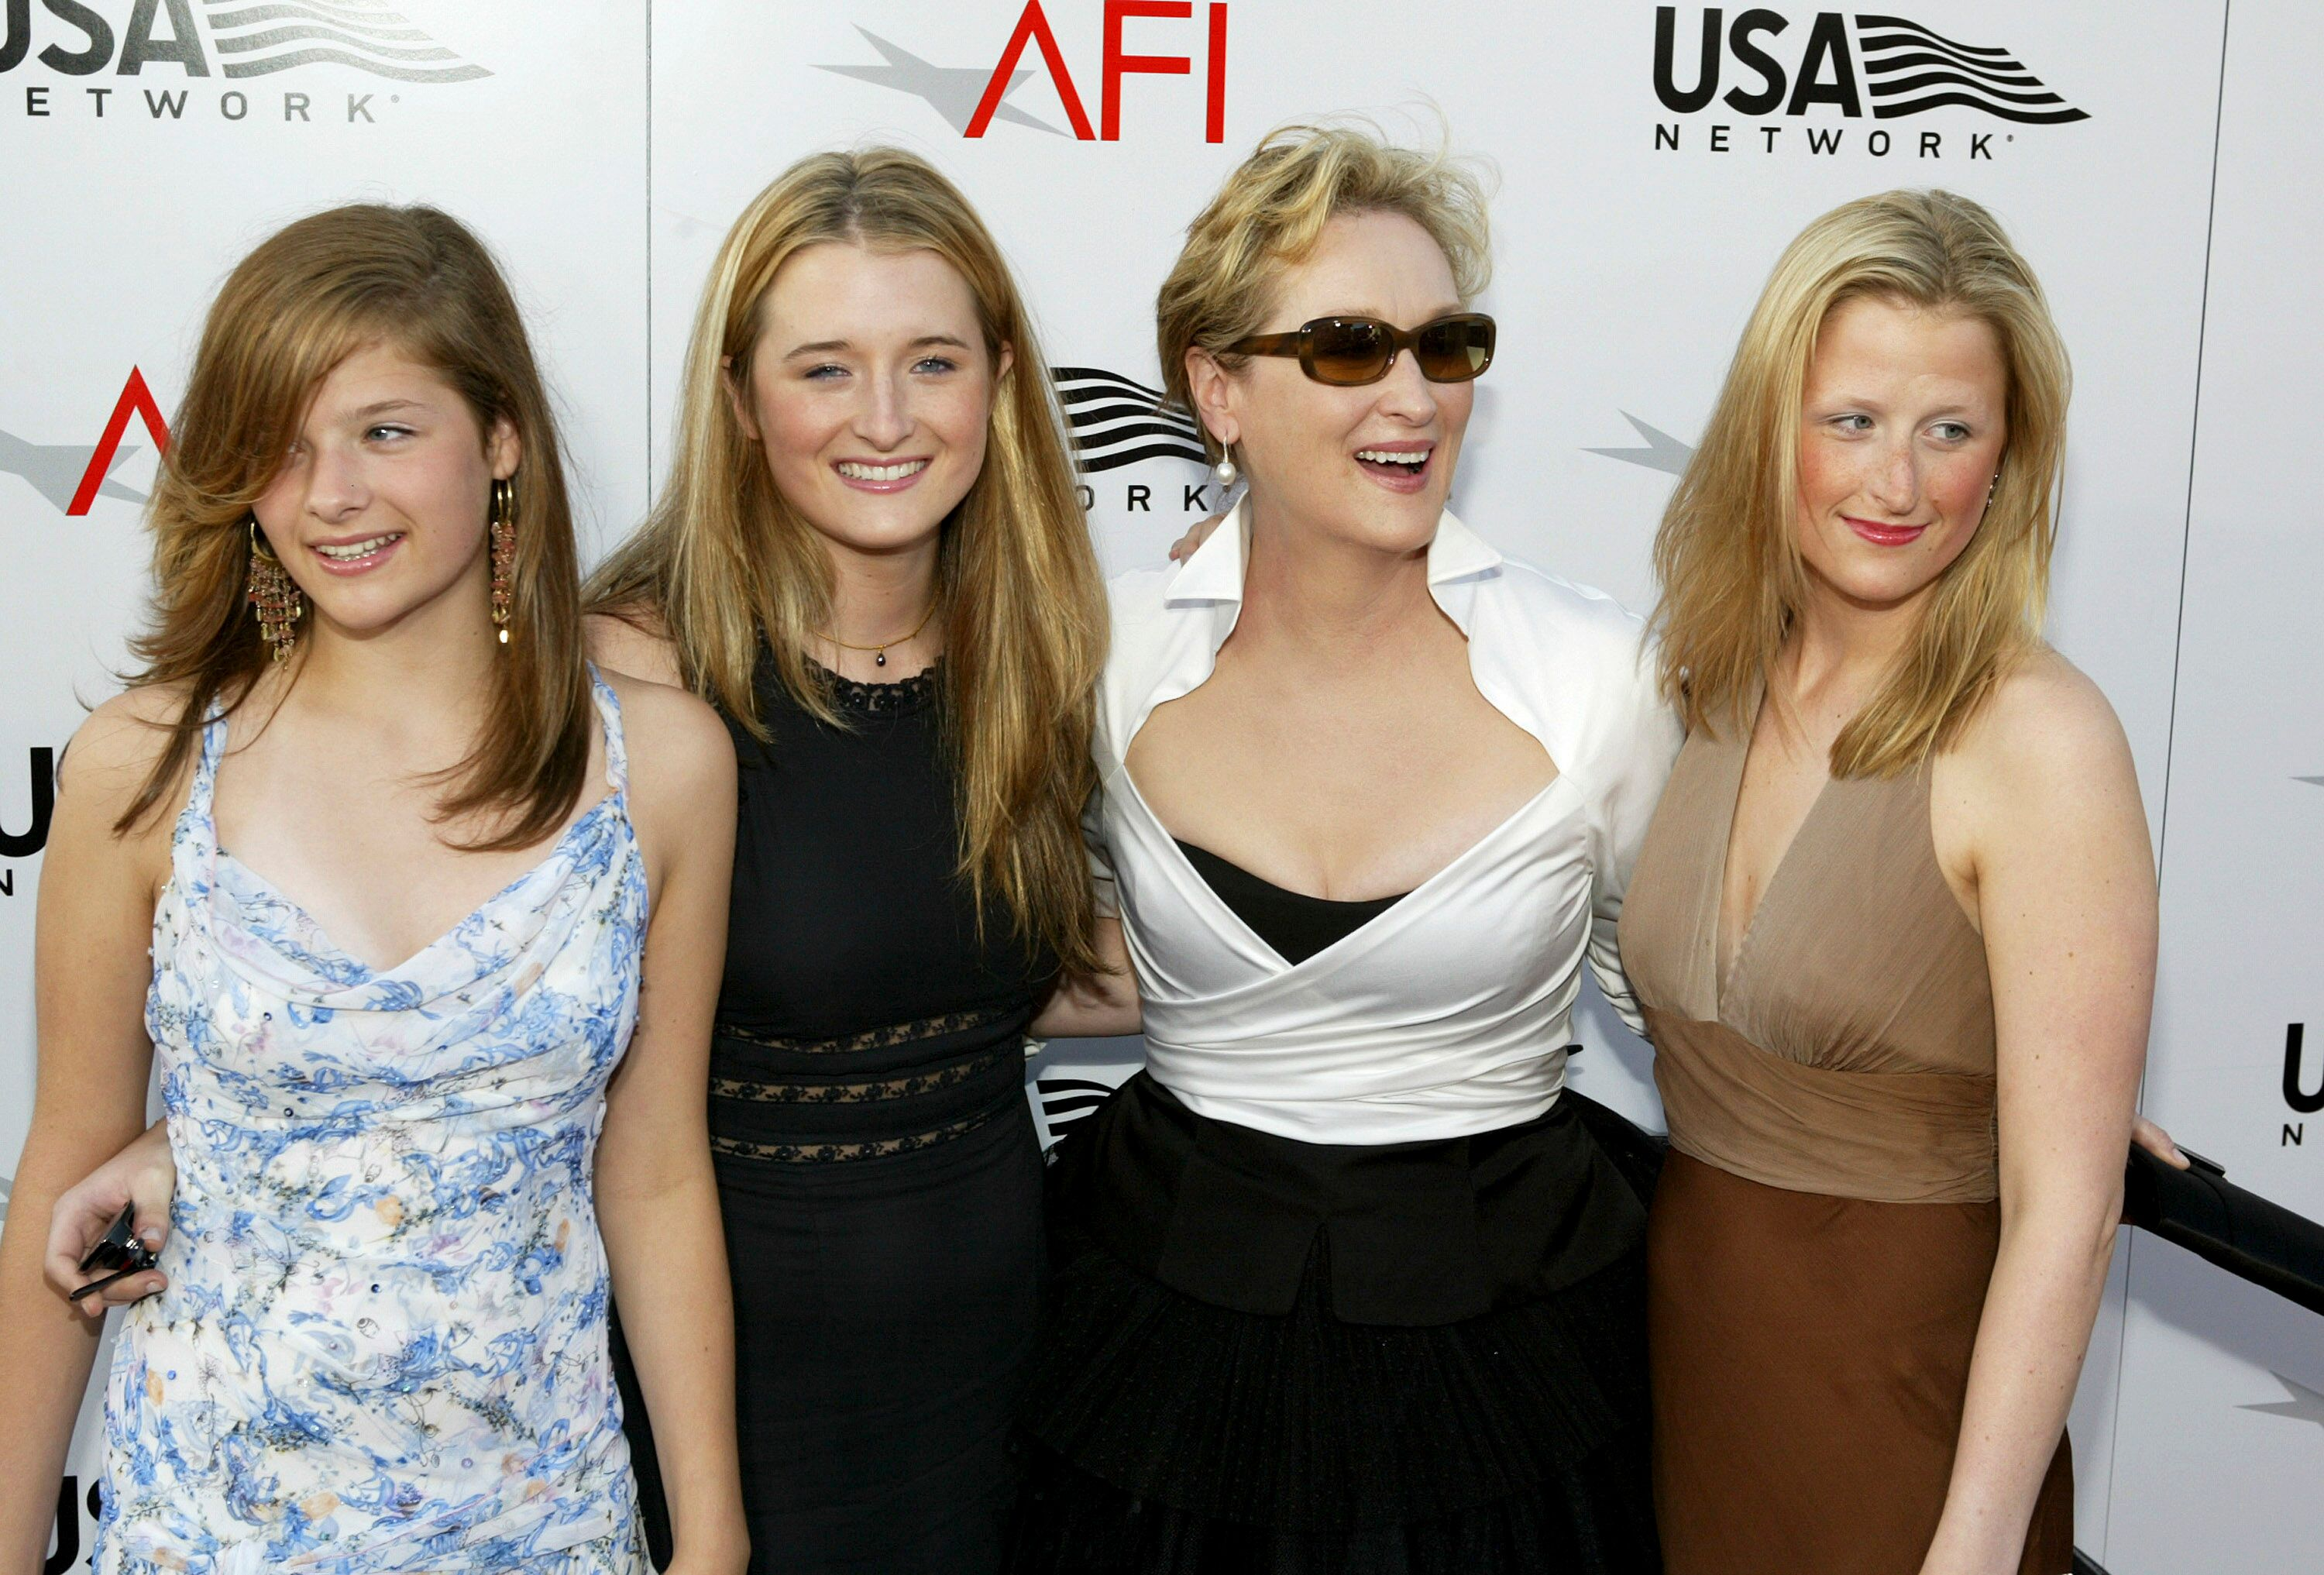 Meryl Streep and her daughters attend the 32nd Annual AFI Life Achievement Award.   Source: Getty Images